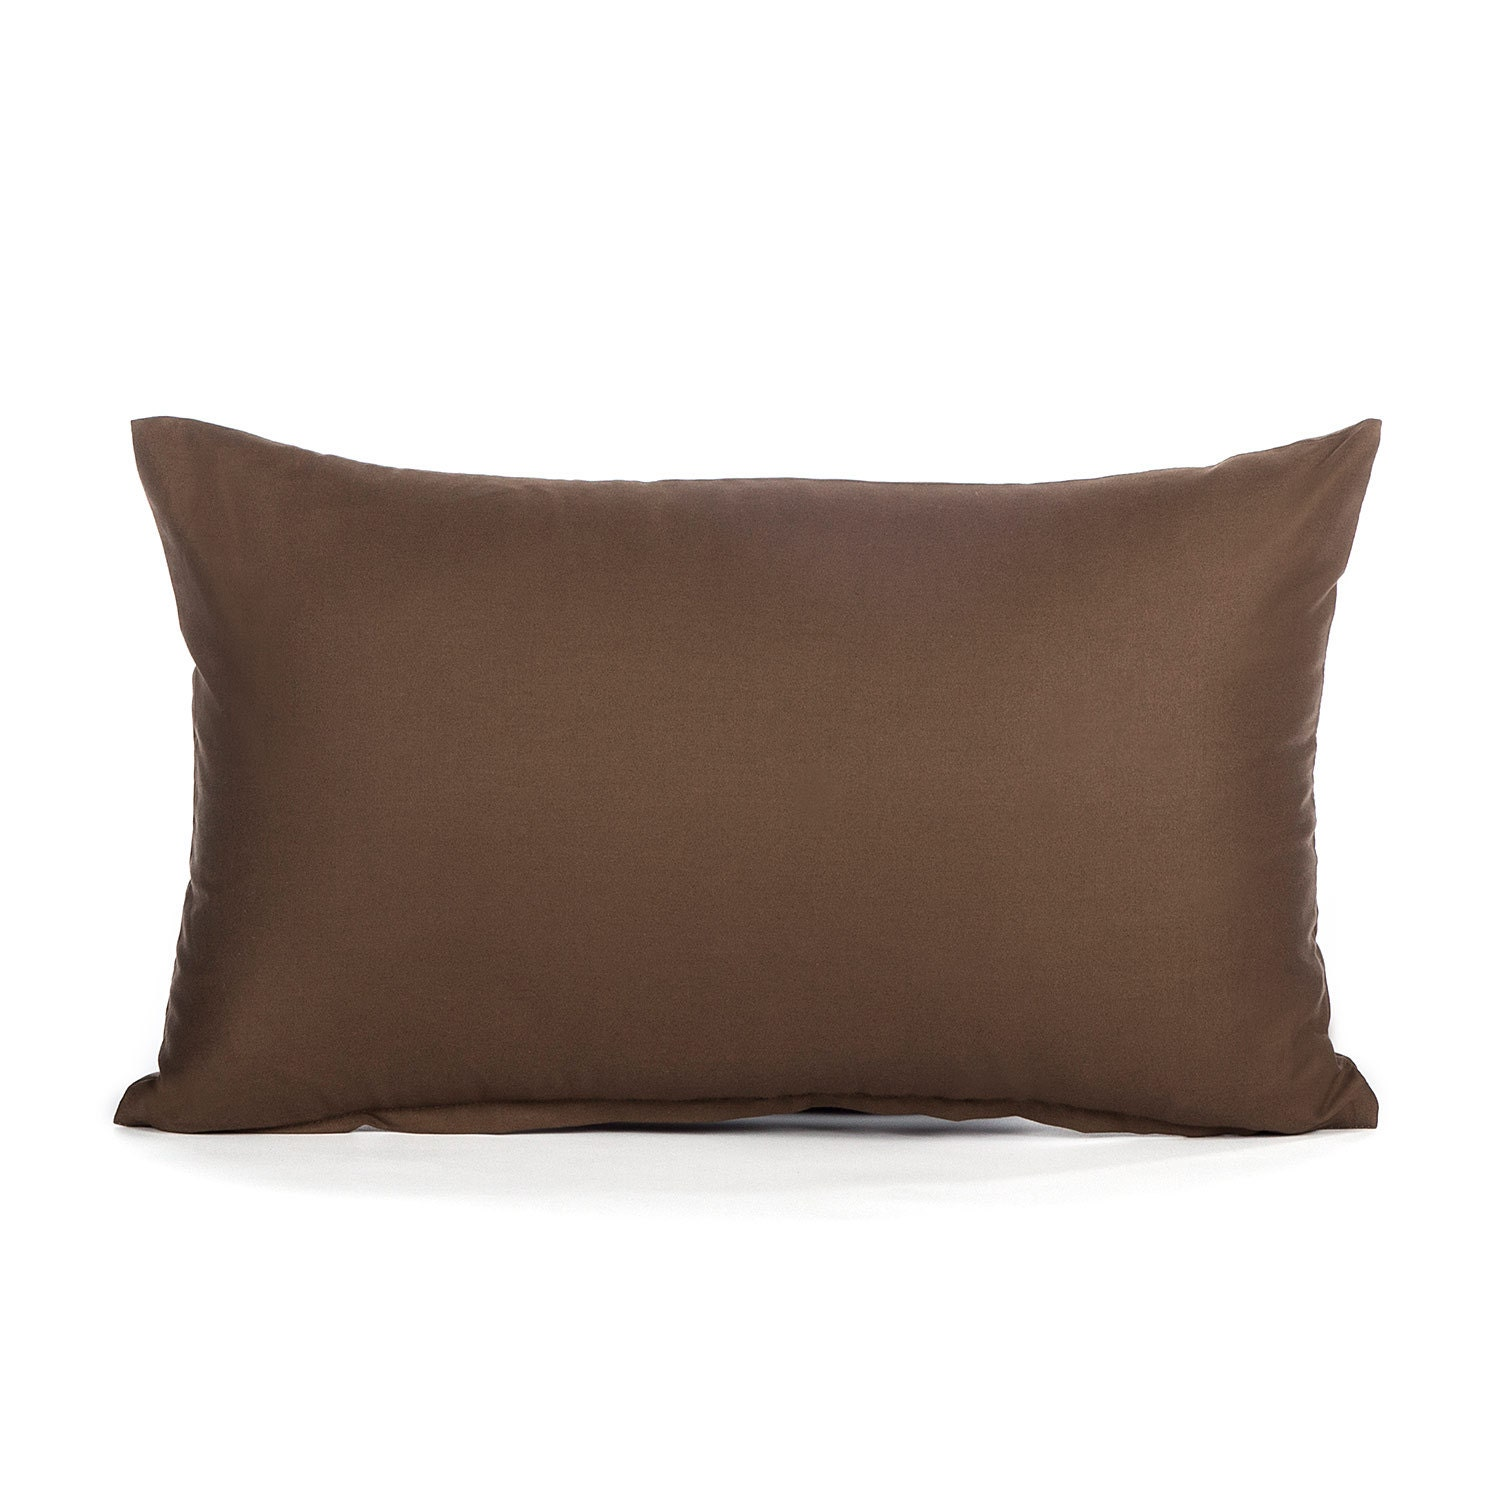 12 x 20 Solid Brown Oblong / Lumbar Throw Pillow Cover by BHDecor